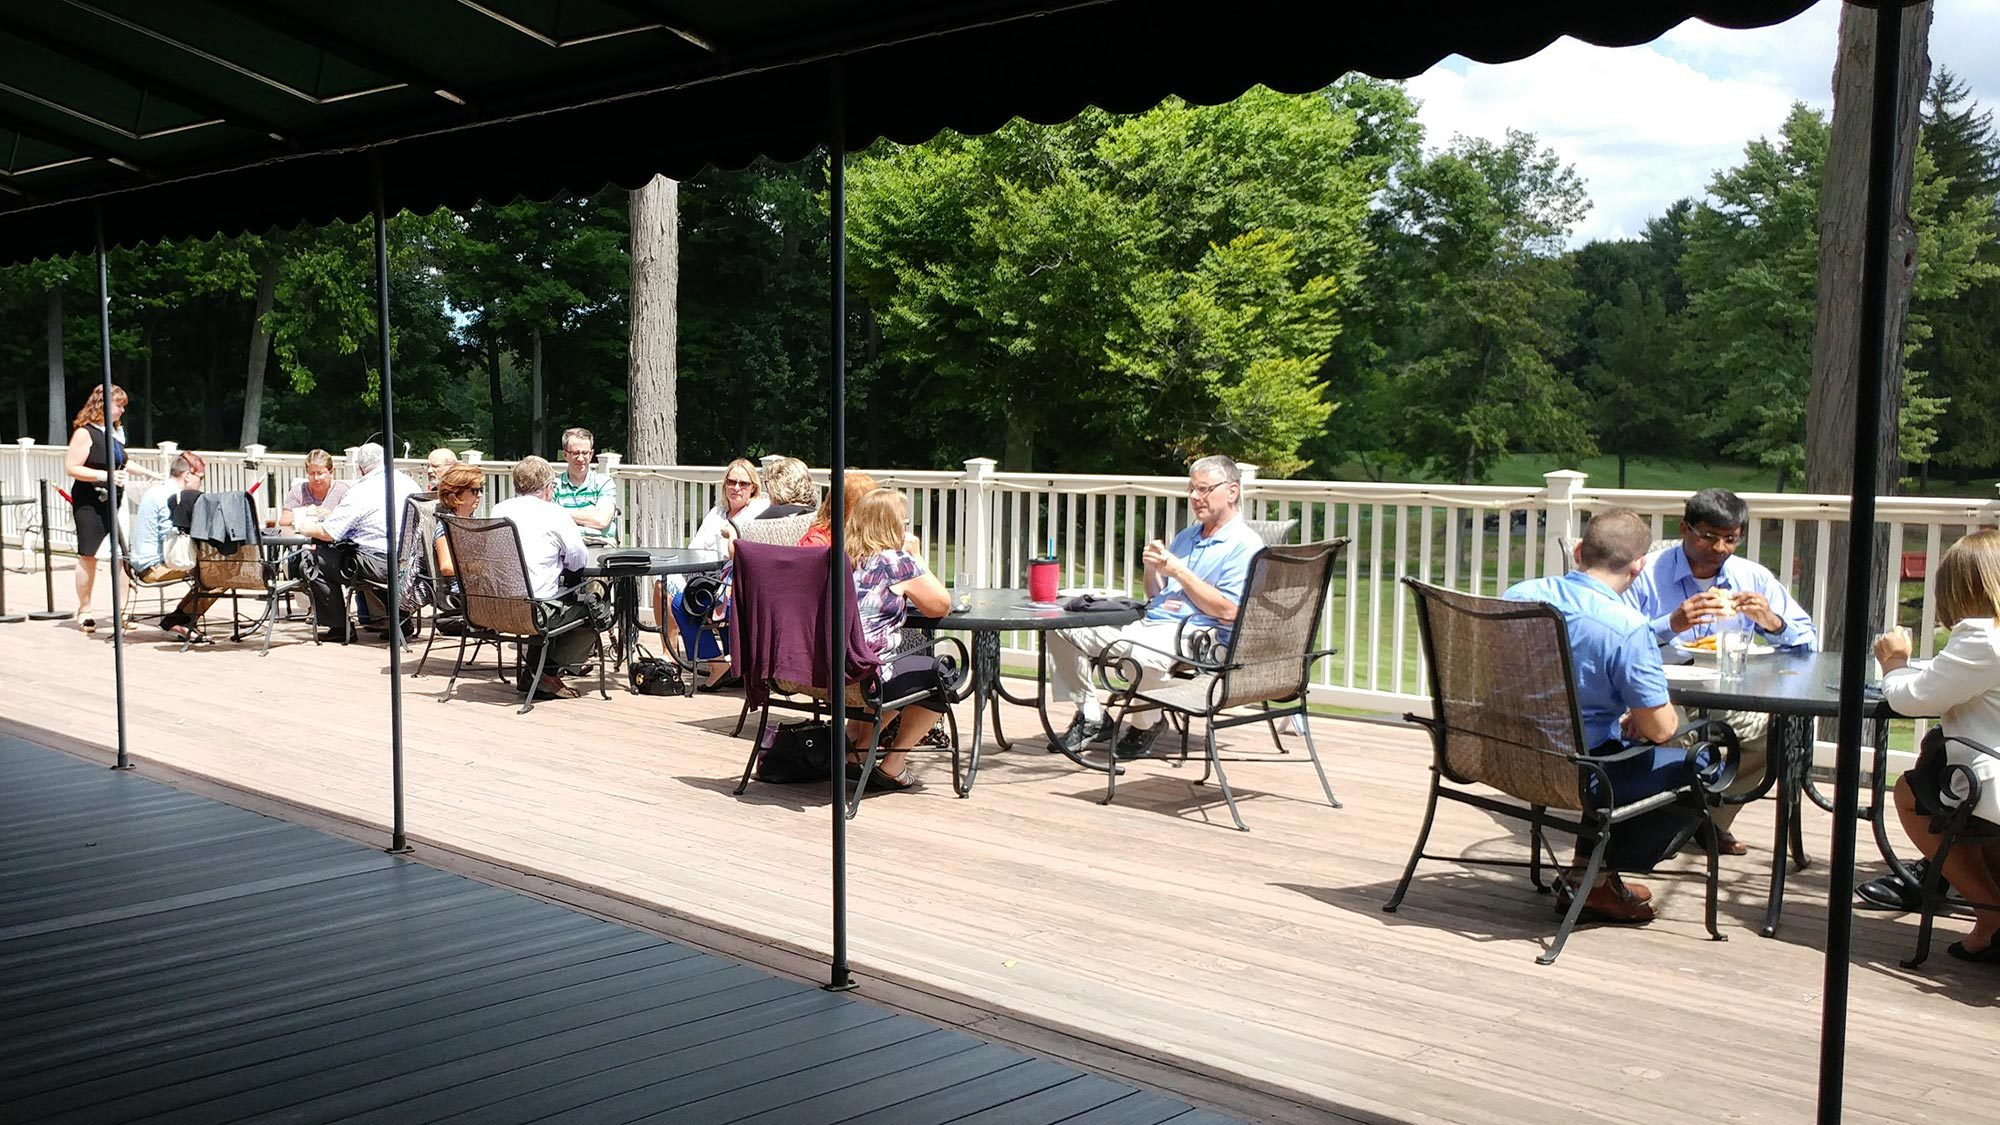 Attendees enjoy lunch on the deck.